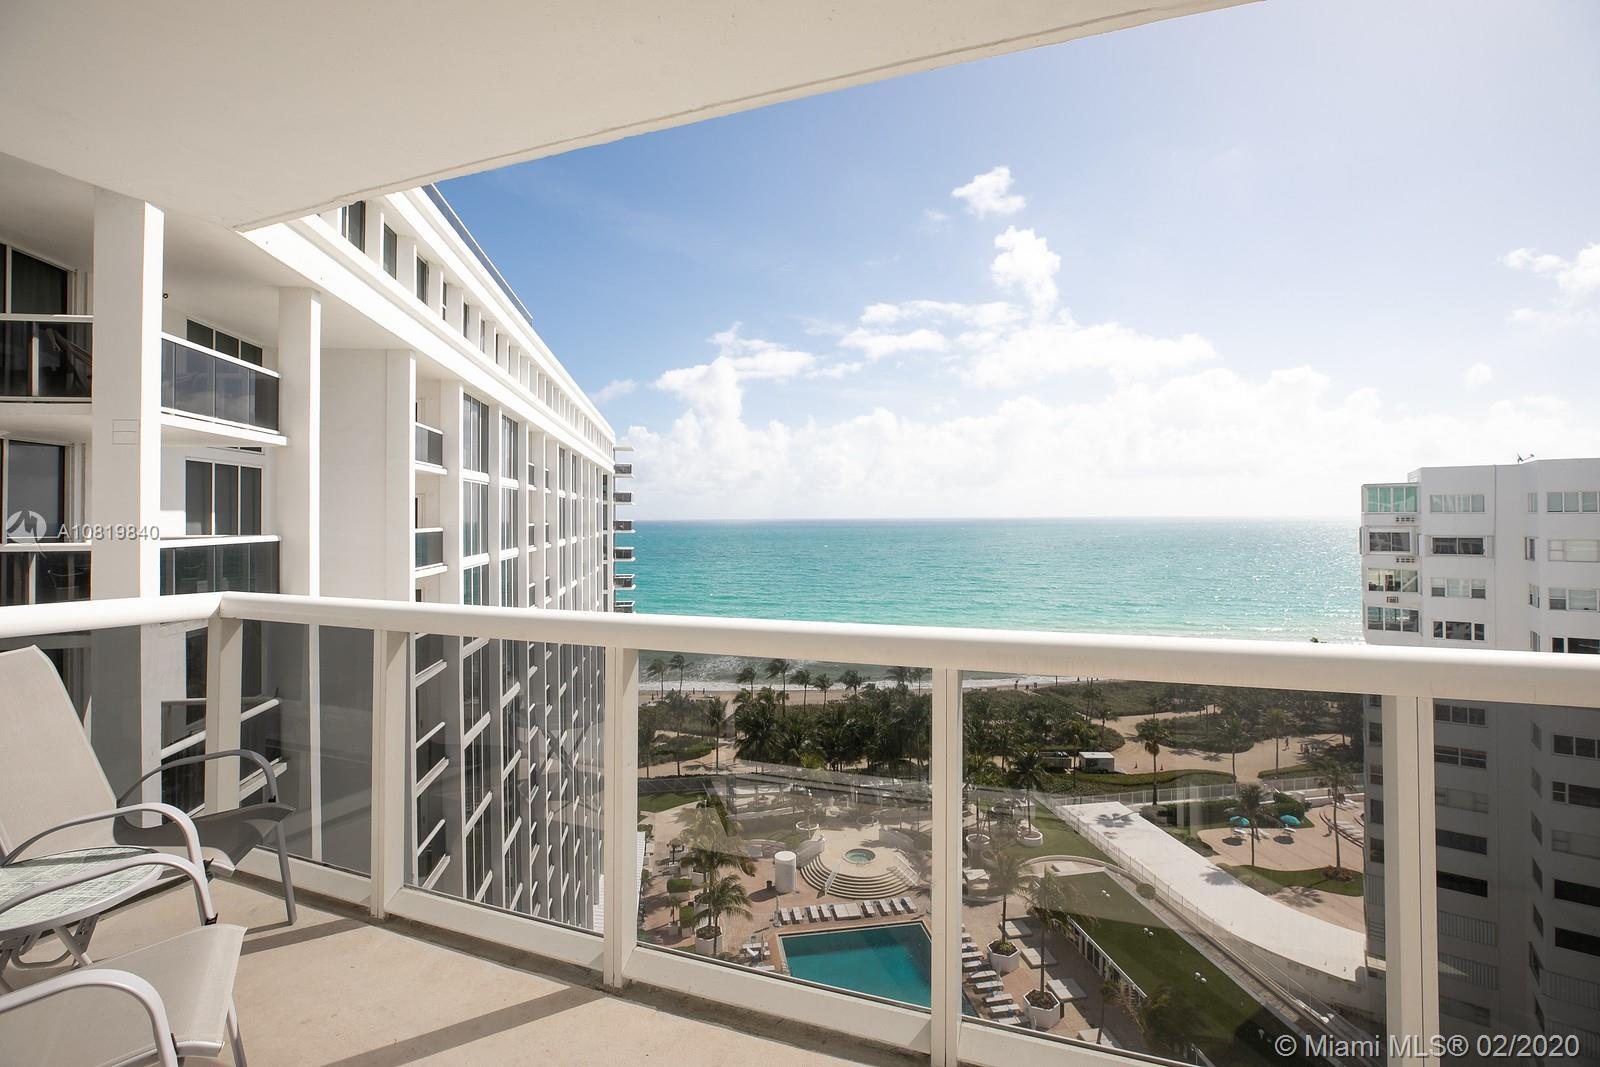 The absolute best value in Bal Harbour, The Harbour House. The building just underwent an $8m renova